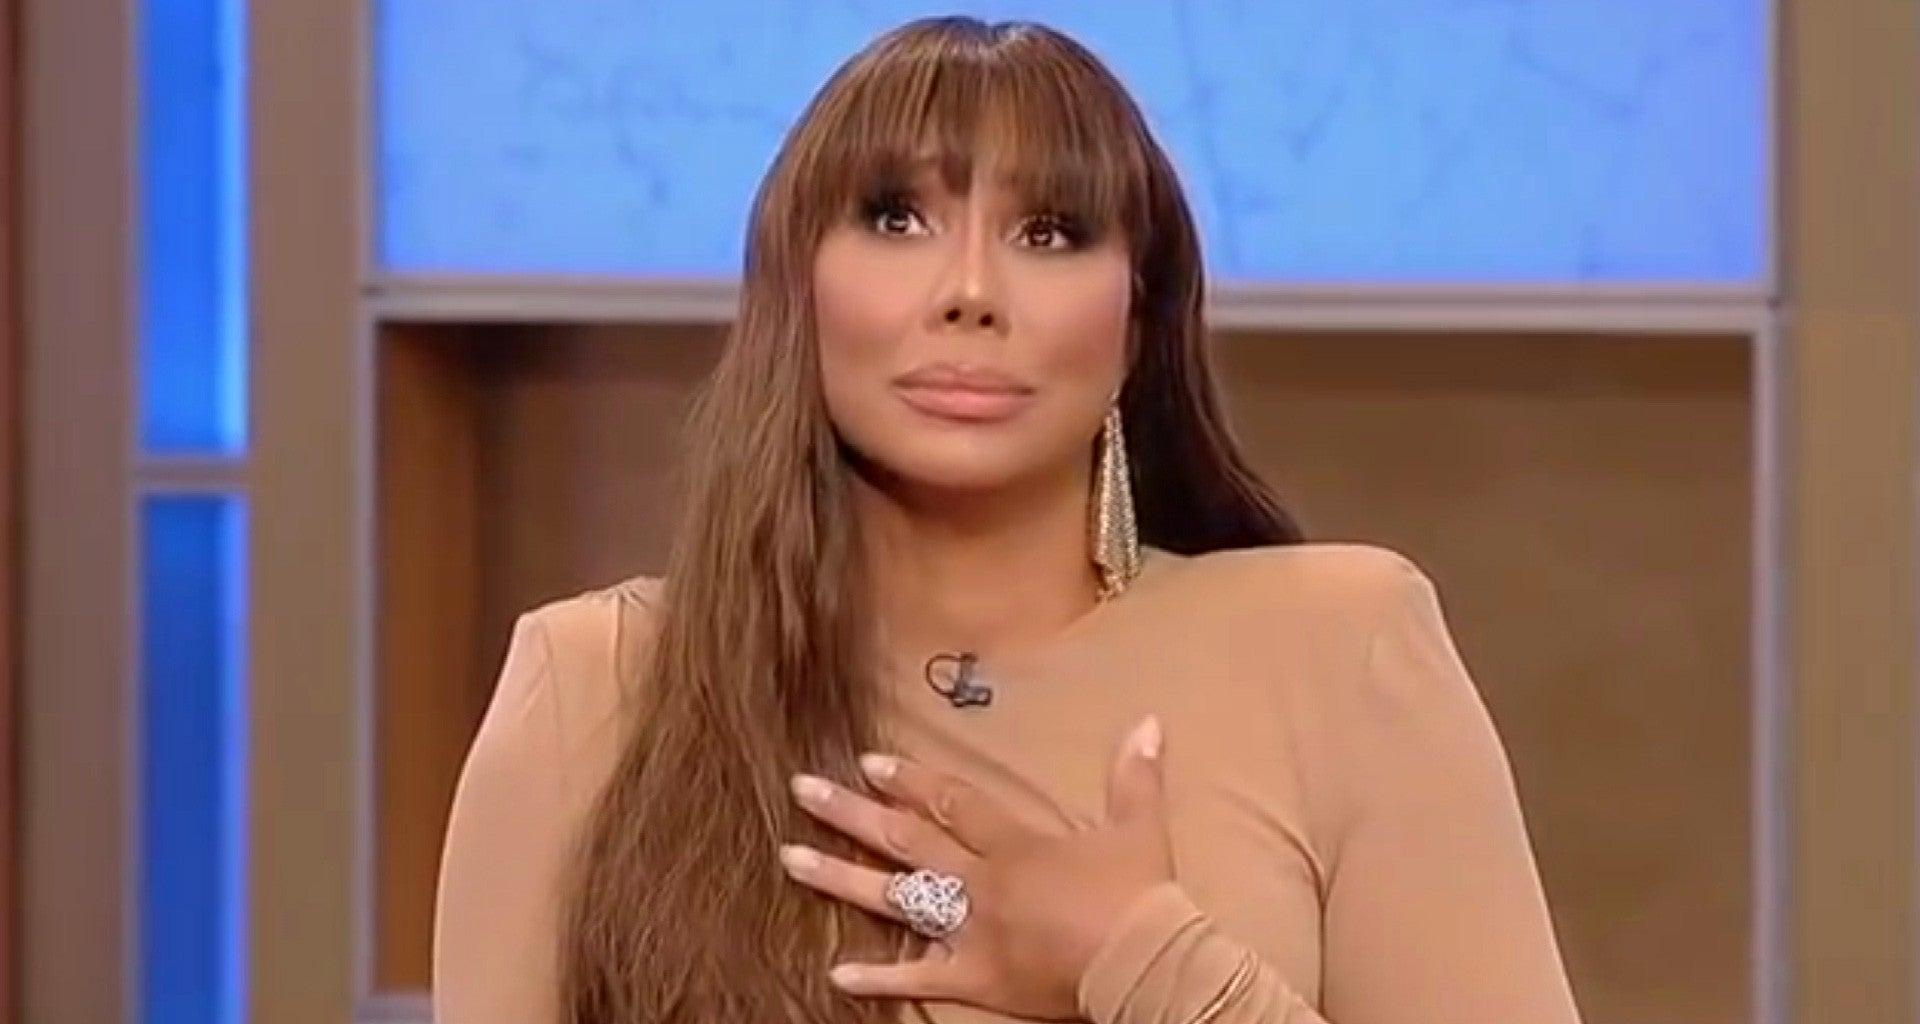 Tamar Braxton Flaunts Her 'Sober, Sound Mind And Body' - See Her Video Here